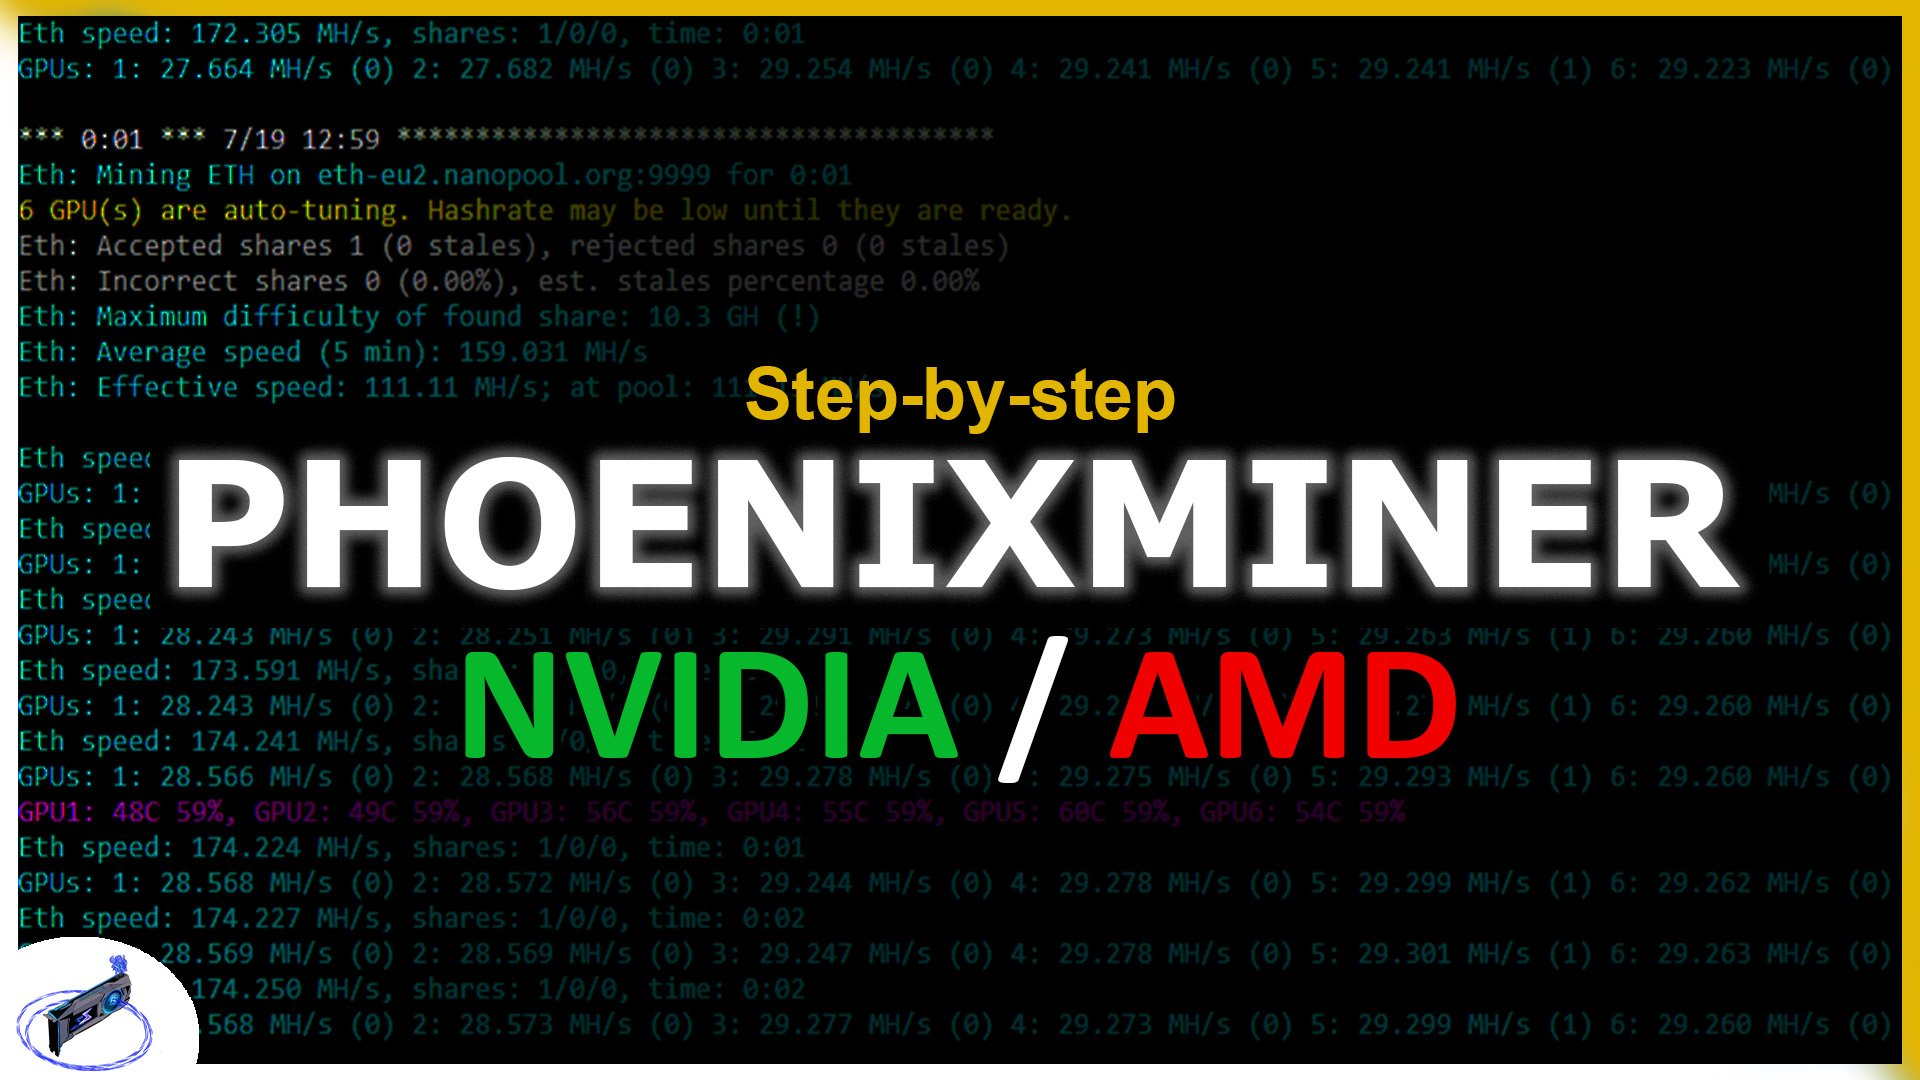 How To Use Phoenixminer - Step-by-step Tutorial